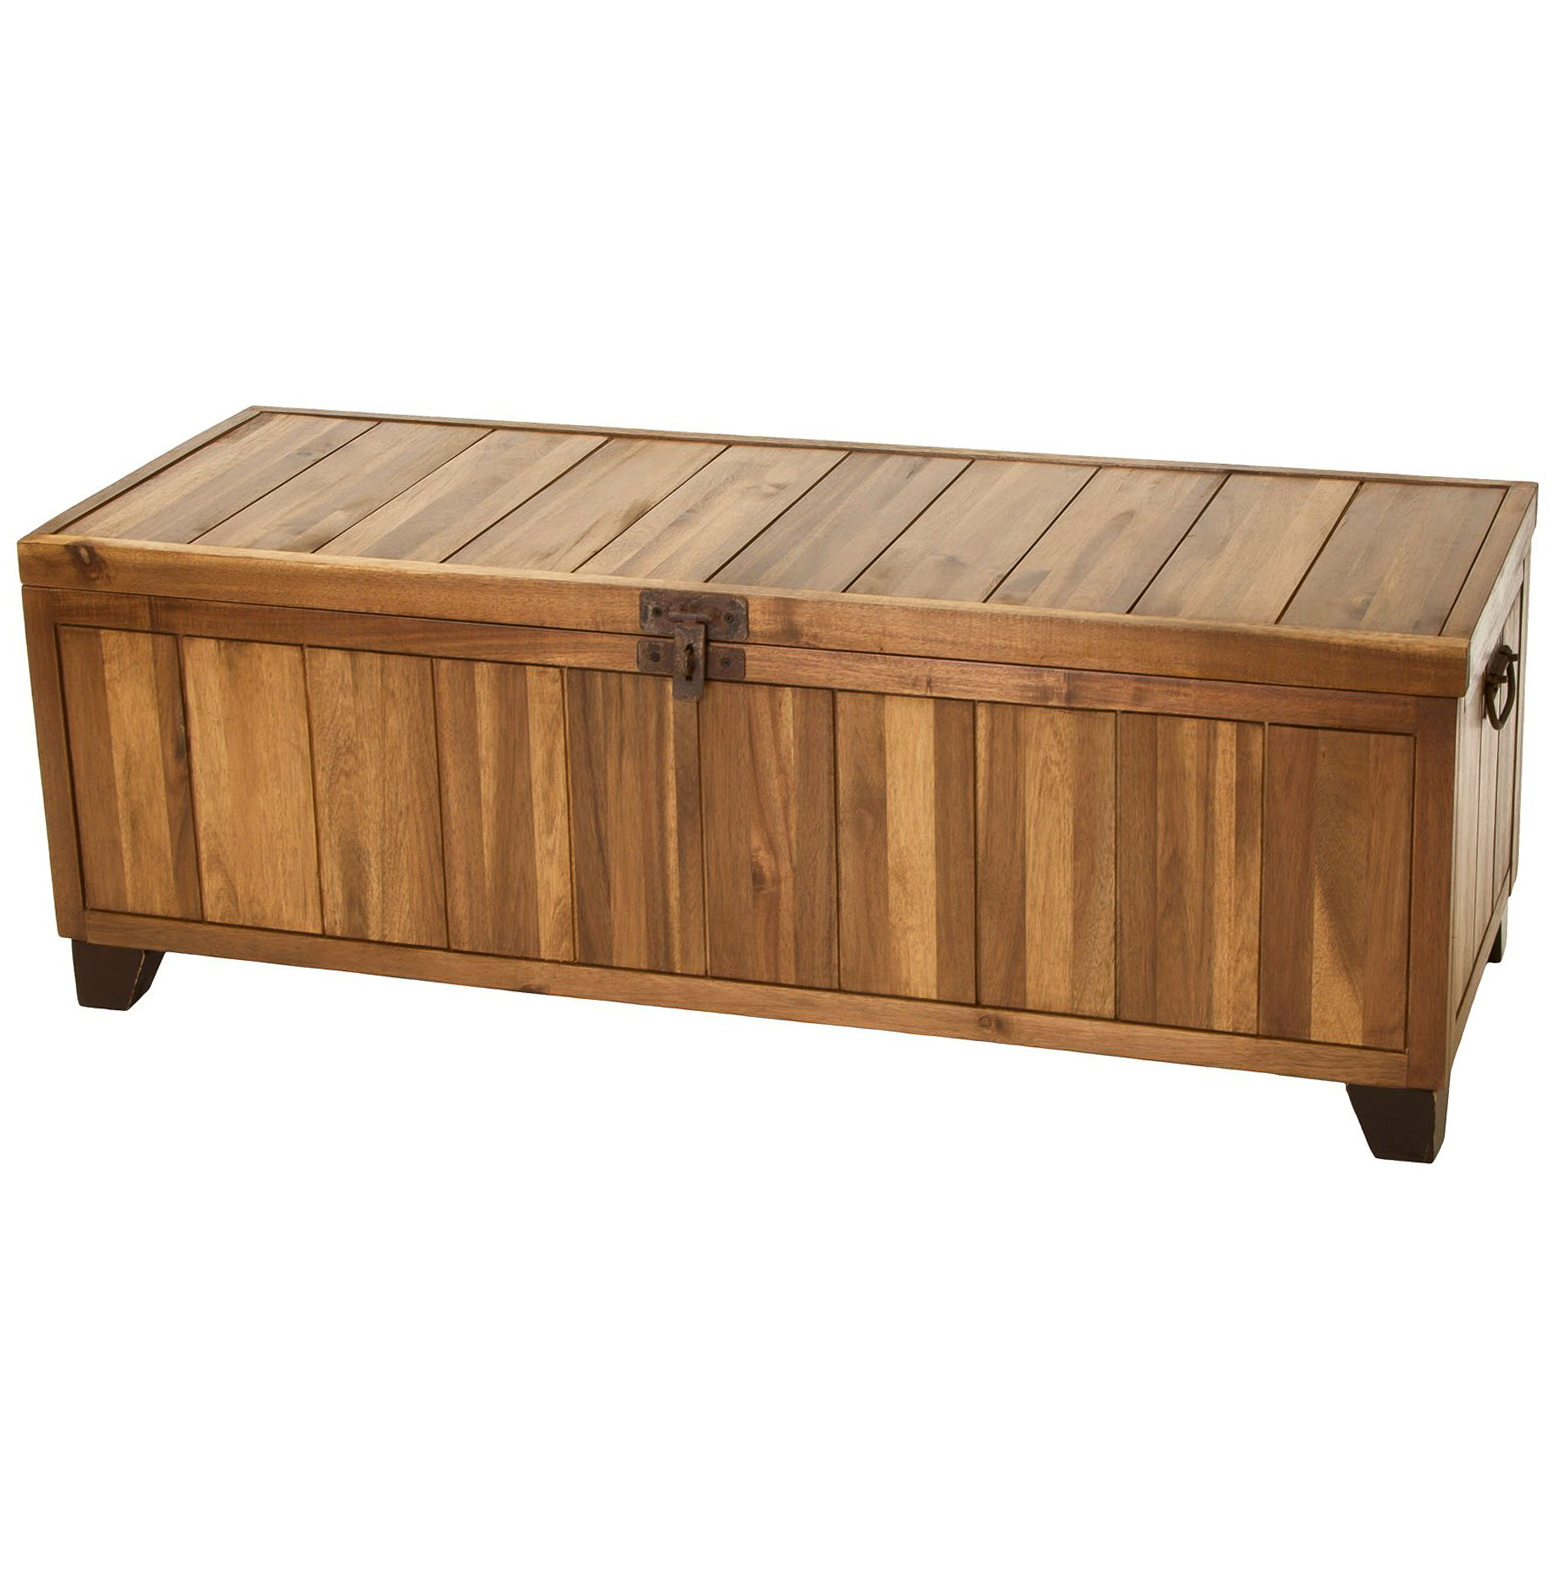 Wood Storage Bench Designs